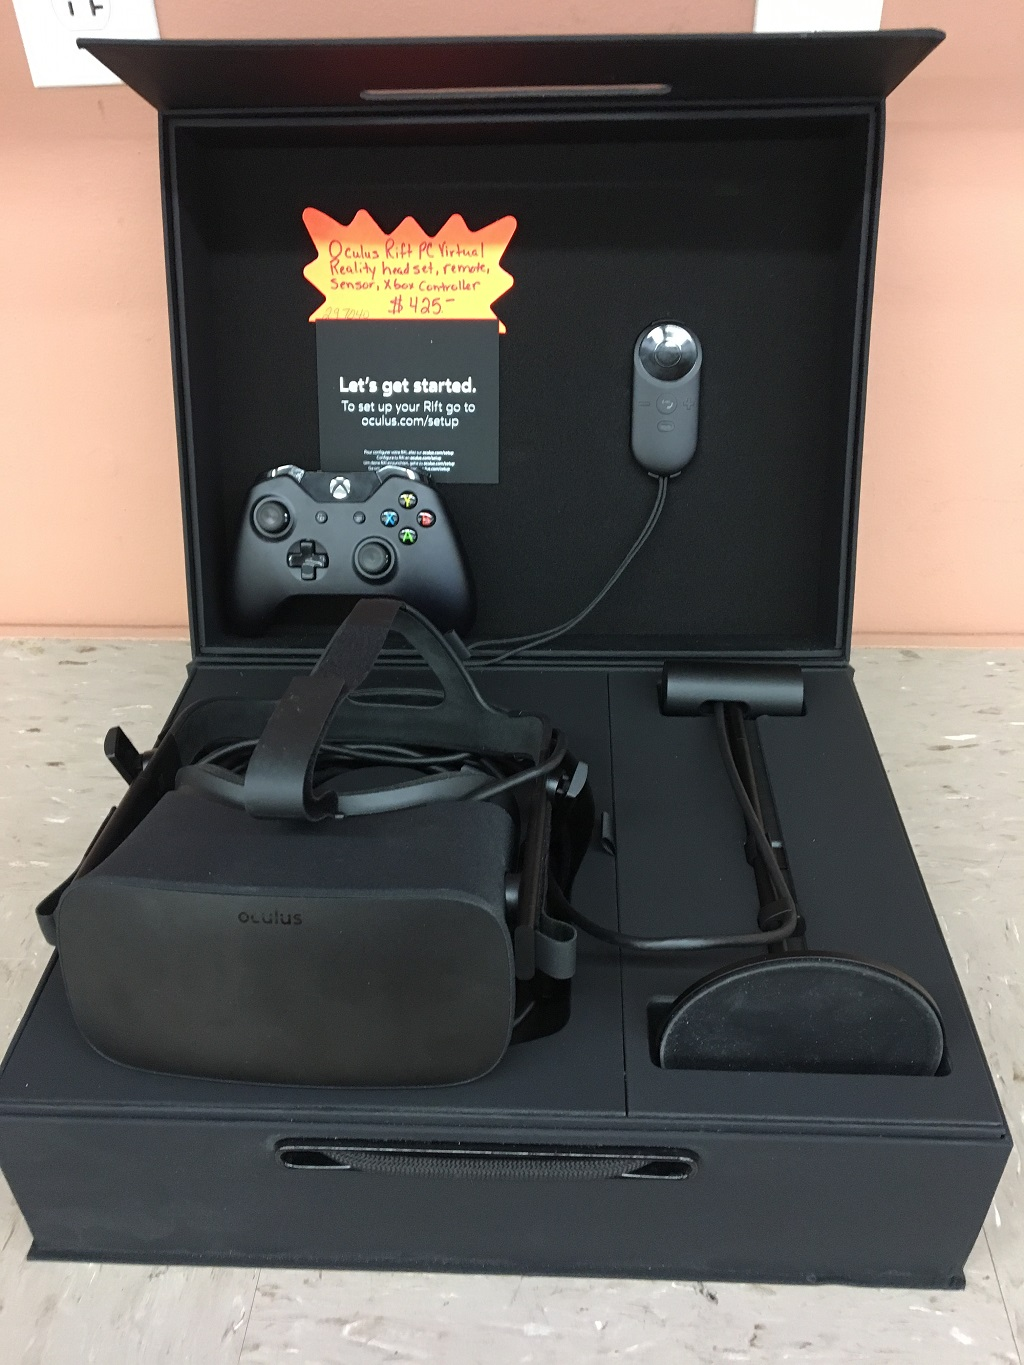 Oculus Rift PC Virtual reality headset. Comes with headset, remote, sensor & XBox one controller $ 425